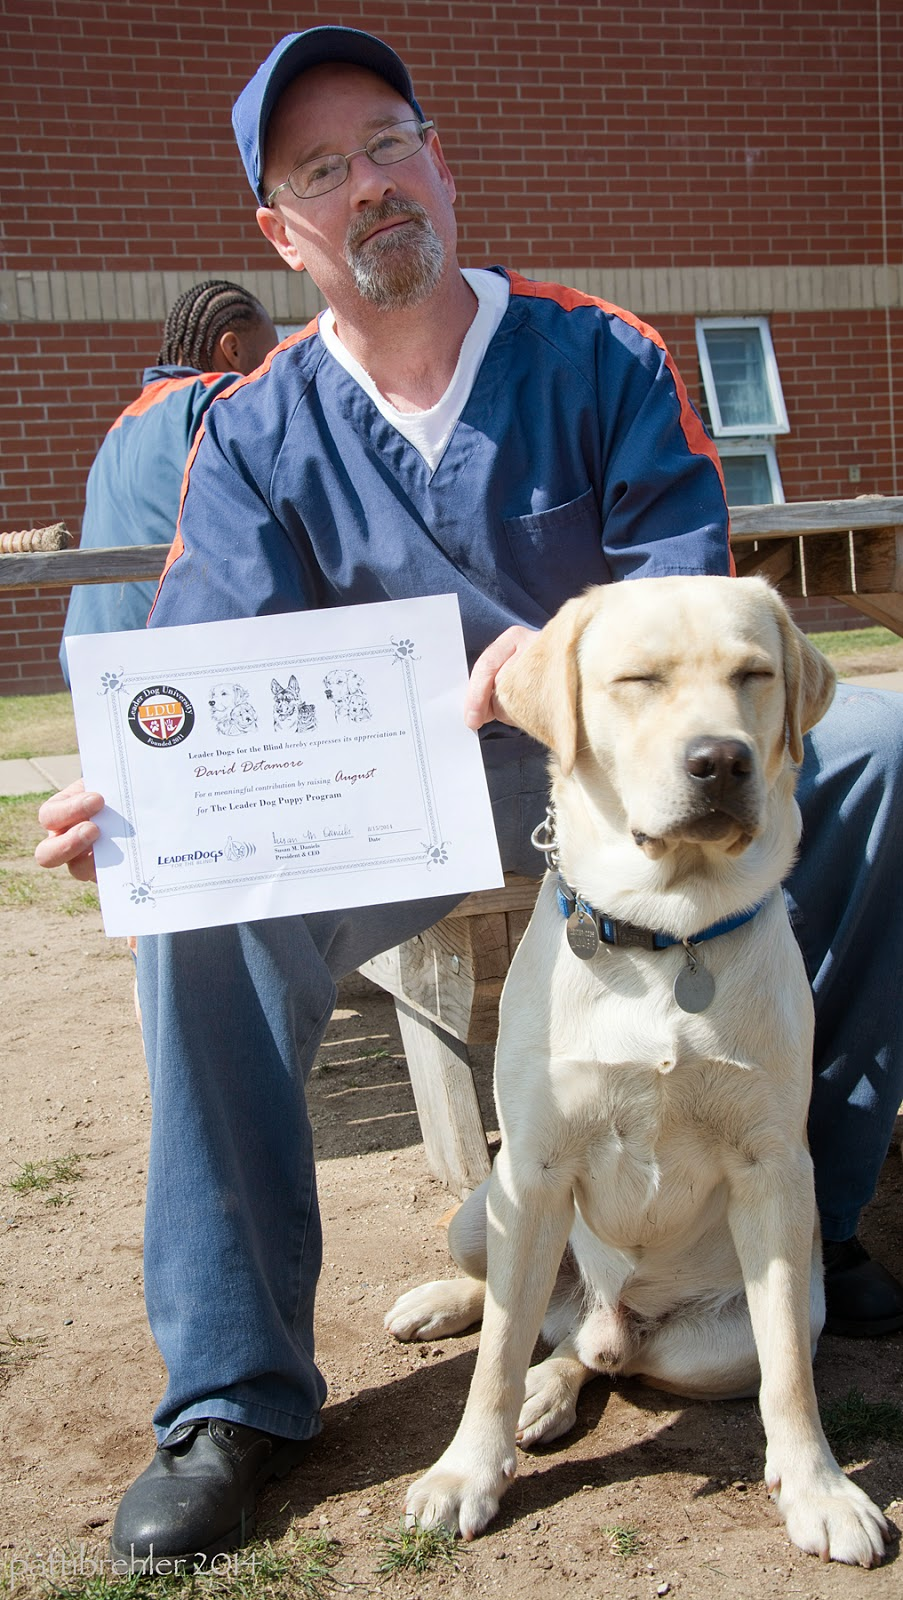 A man wearing glasses and the blue prison uniform with a blue ball cap is sitting in the sun on a picnic bench. He is holding a certificate in his right hand by his knee. A young yellow lab is sitting between his legs facing the camera. The dog's eyes are closed. There is a brick building behind them.